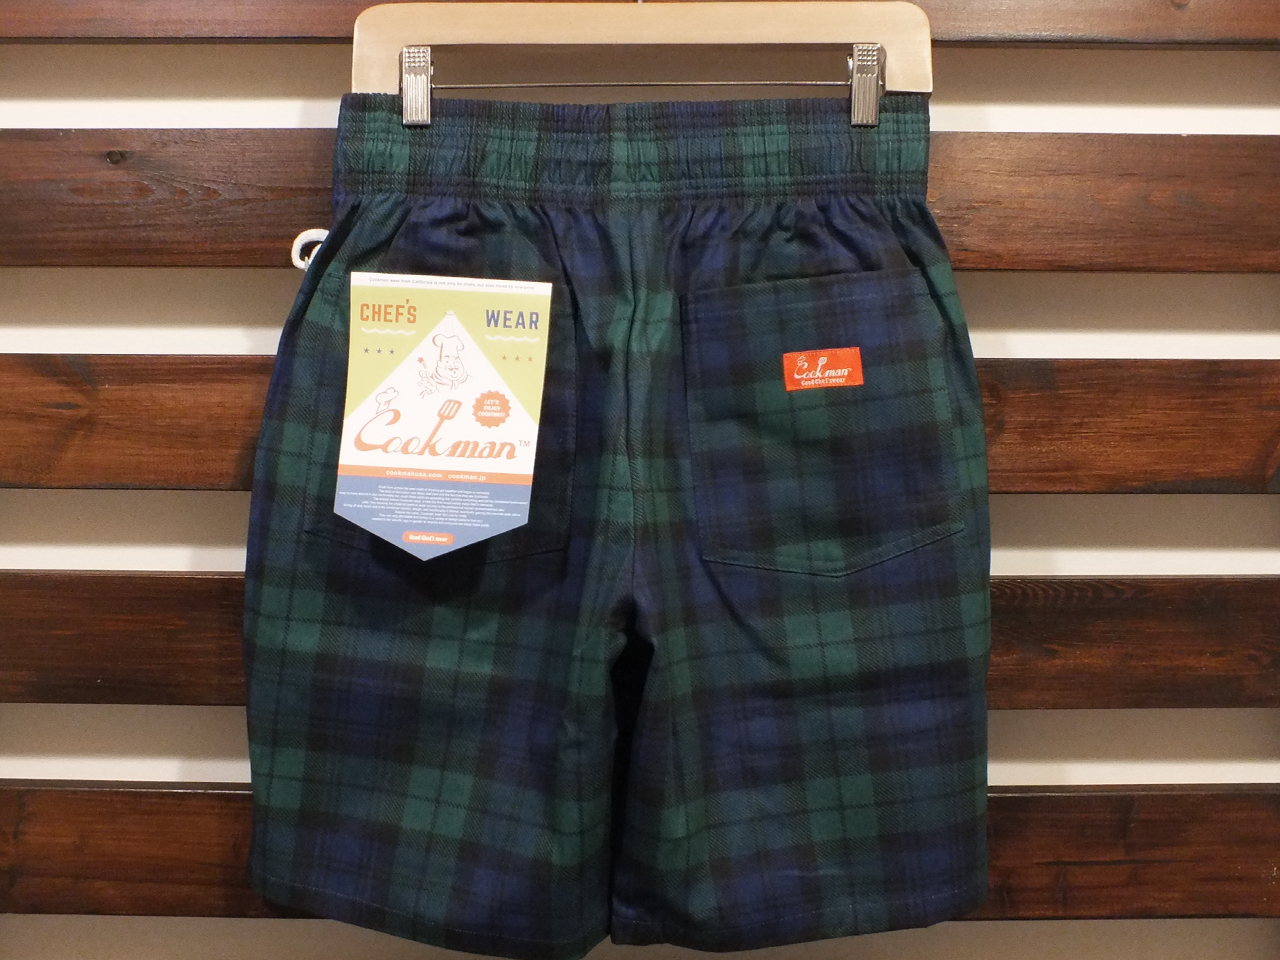 COOKMAN LOS ANGELES CALIFORNIA CHEF SHORT PANTS BLACK WATCH CHECK